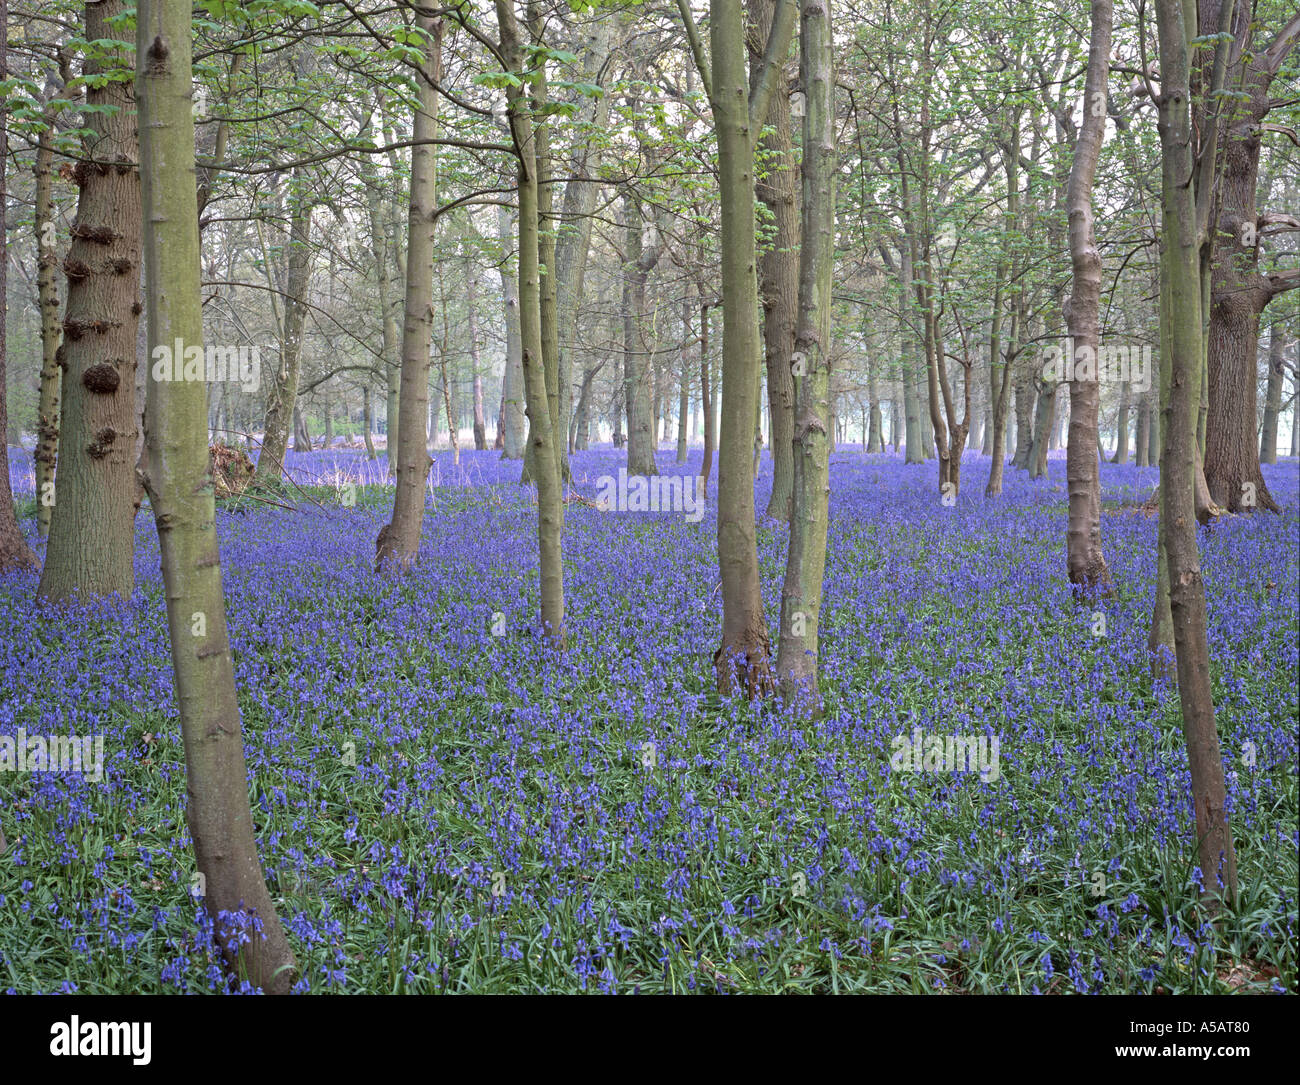 early morning in blubell wood in the Chilterns near marlow and henley on thames - Stock Image